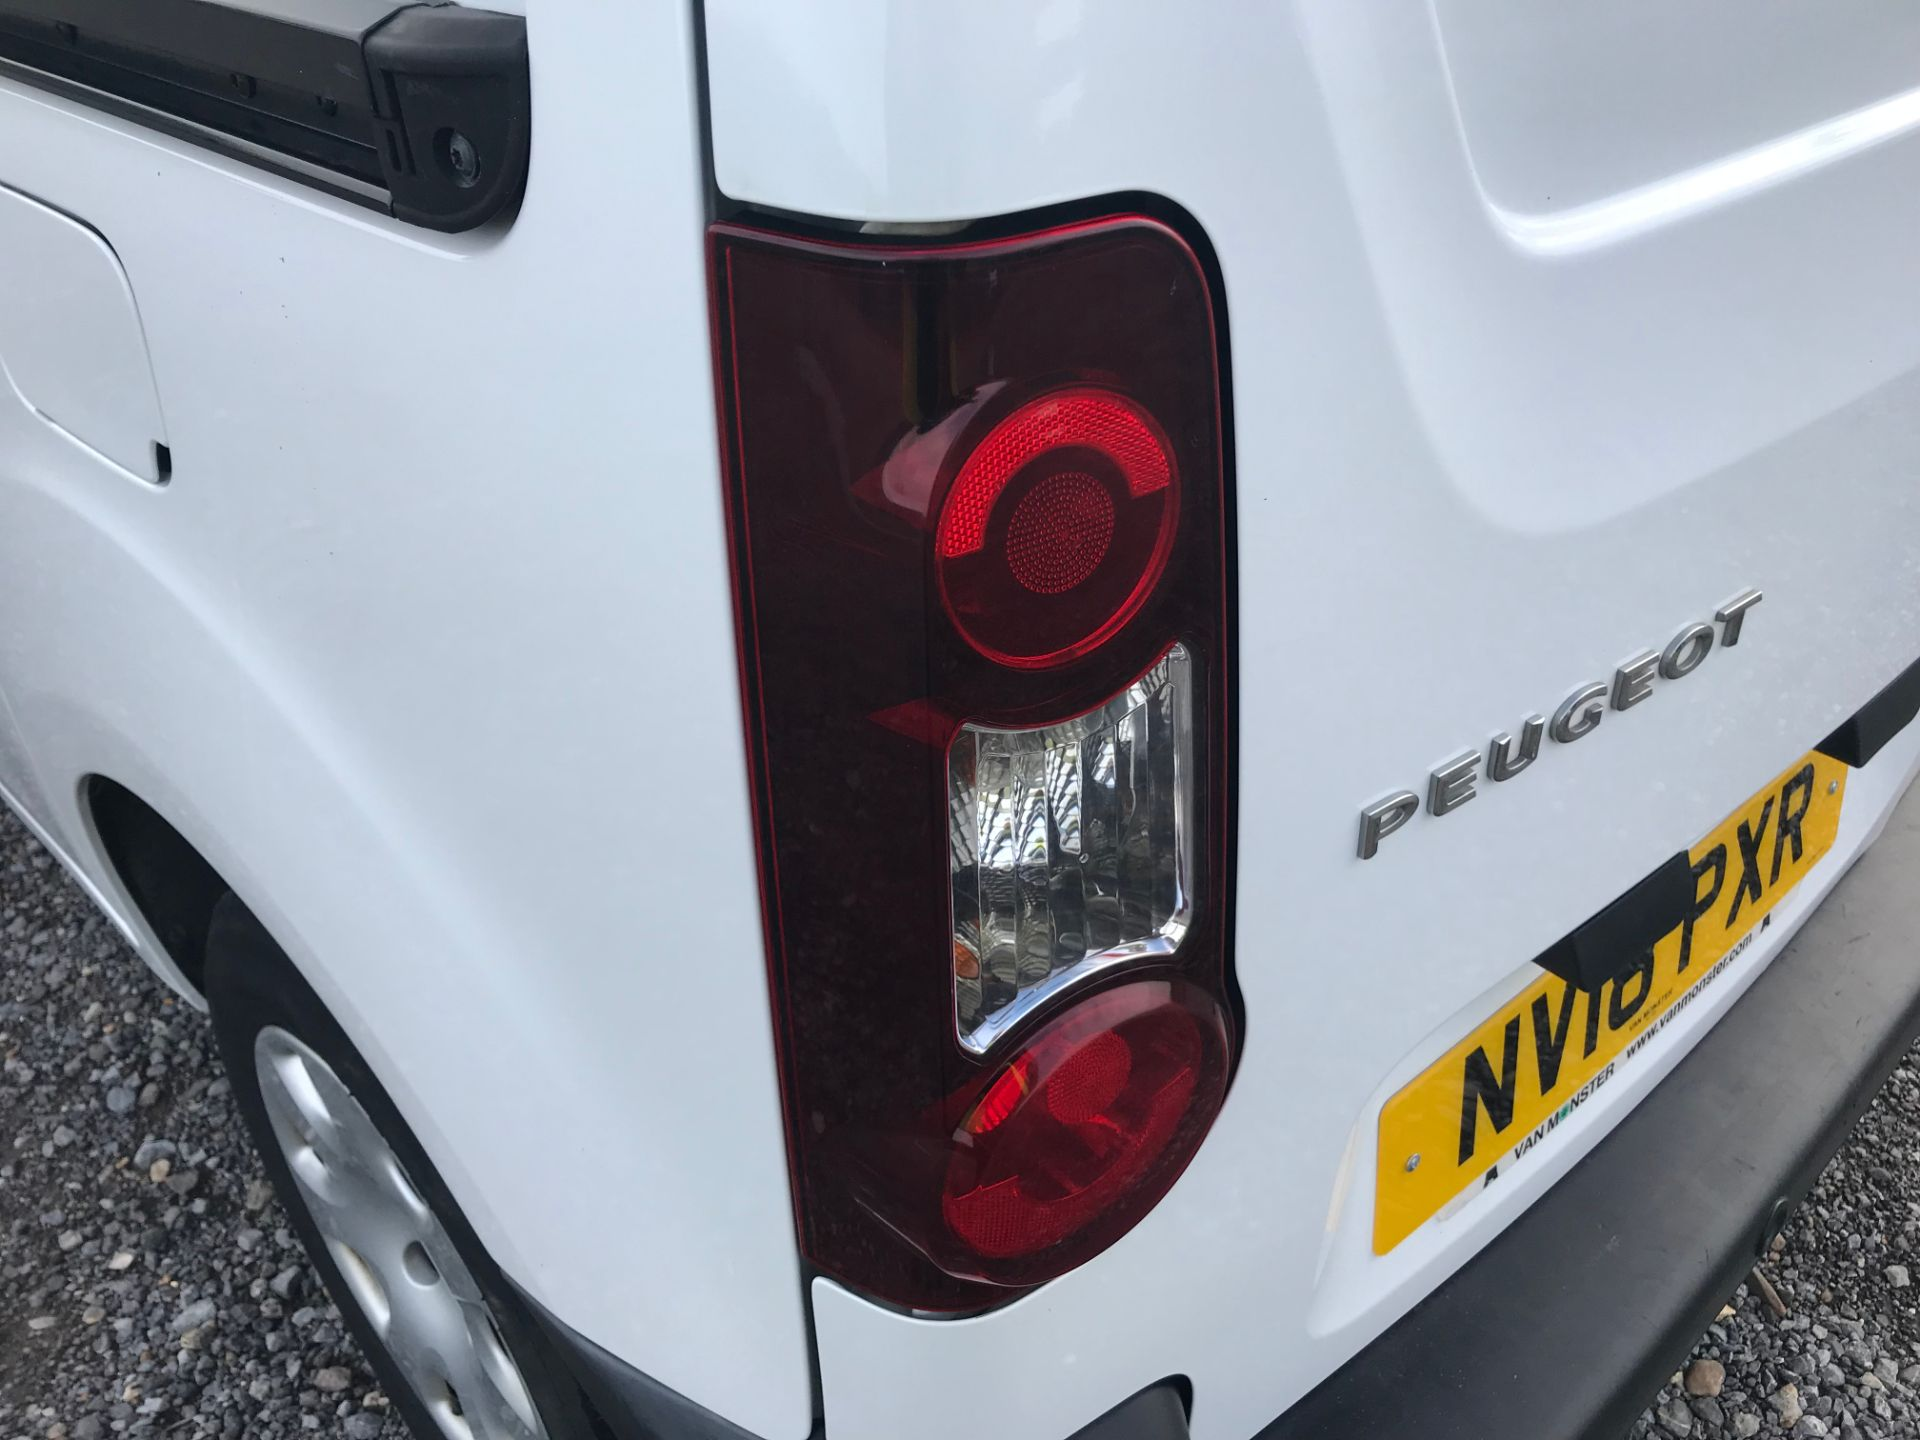 2018 Peugeot Partner 850 1.6 Bluehdi 100 Professional Van [Non Ss]*Restricted to 69MPH* (NV18PXR) Image 16